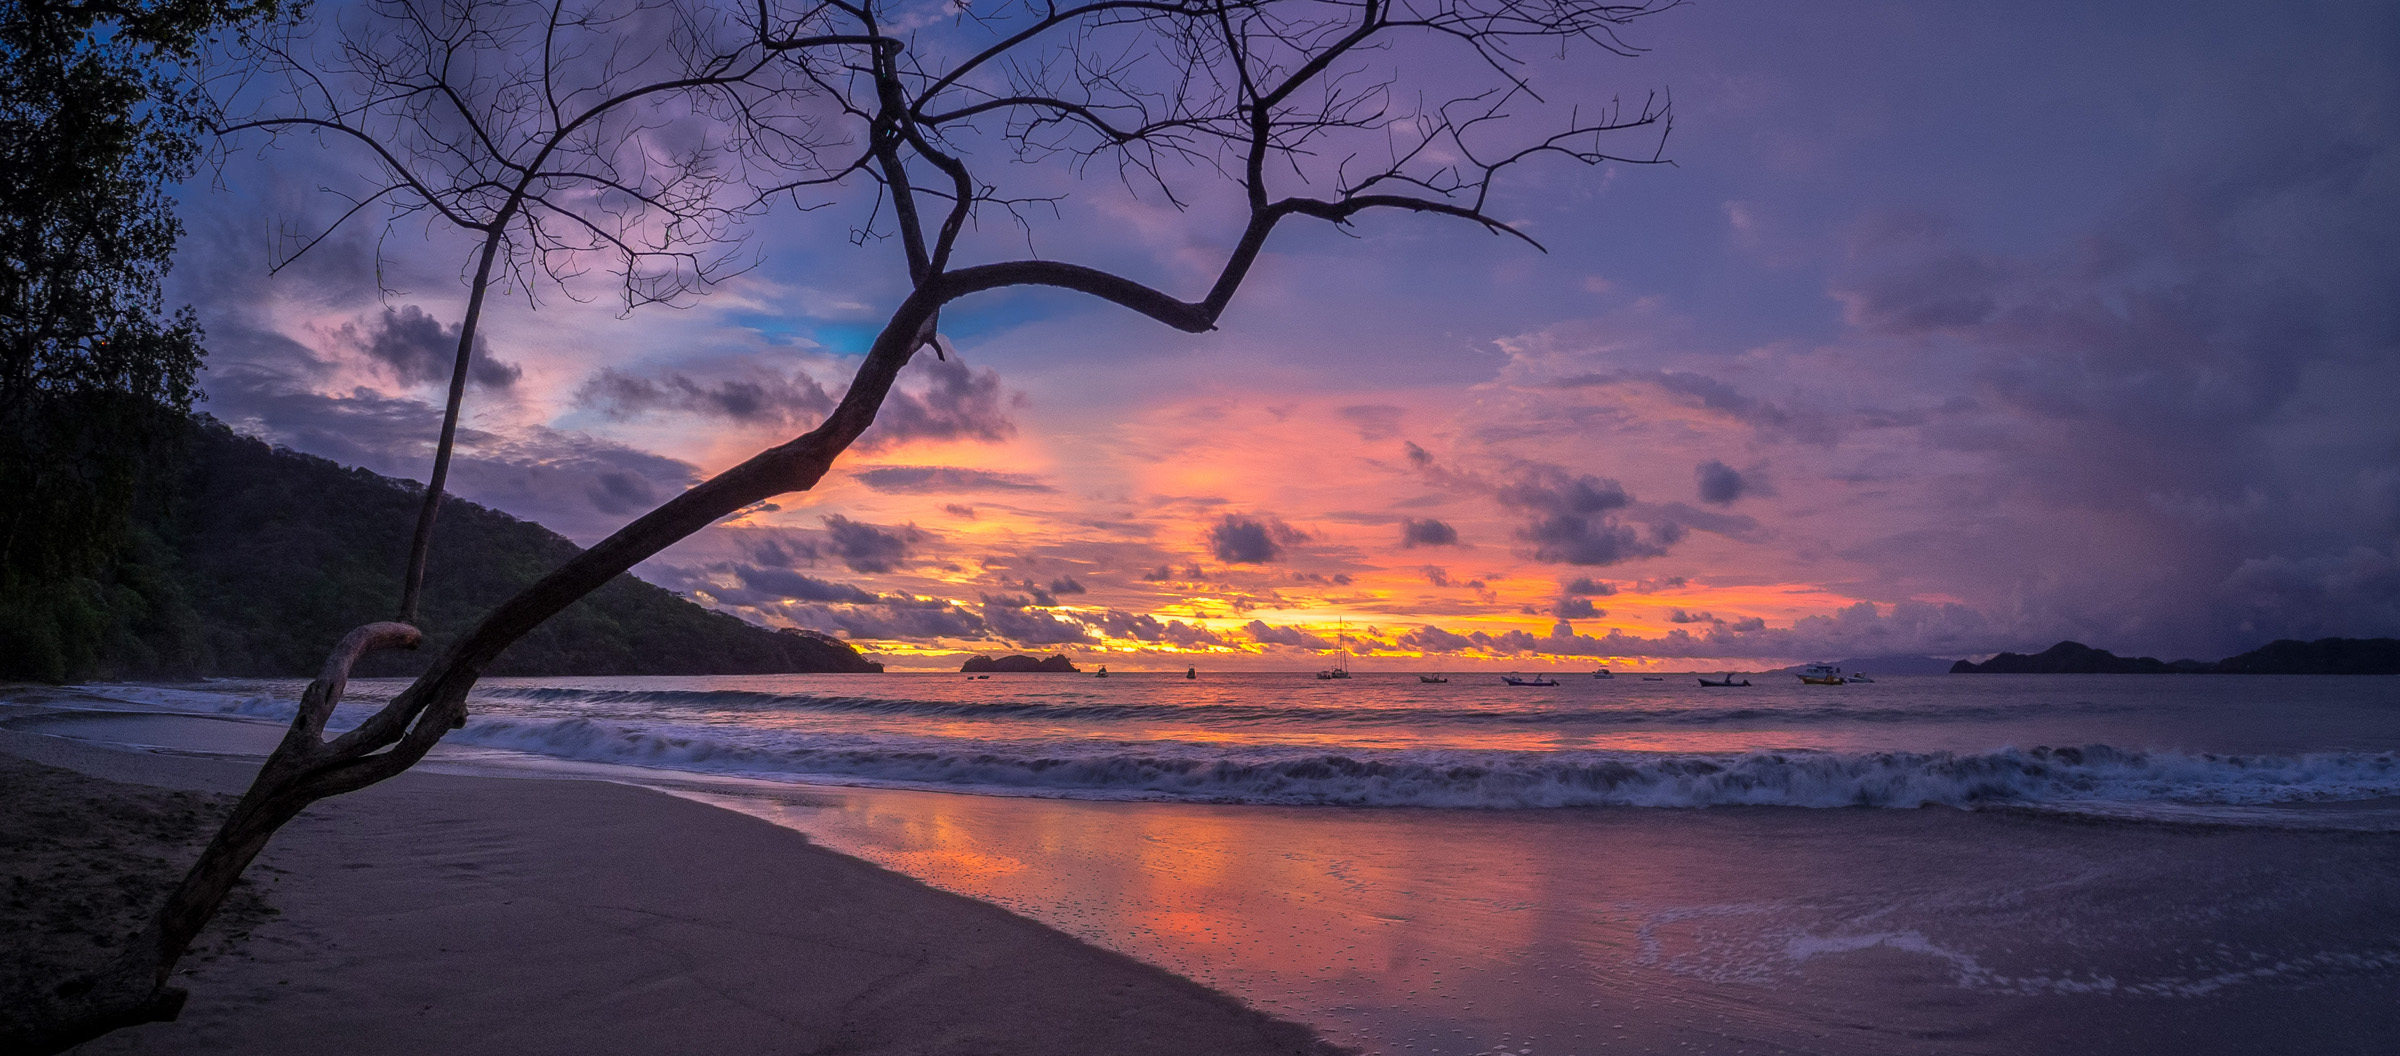 Sunset on Playa Hermosa, Costa Rica - by Norm Lanier